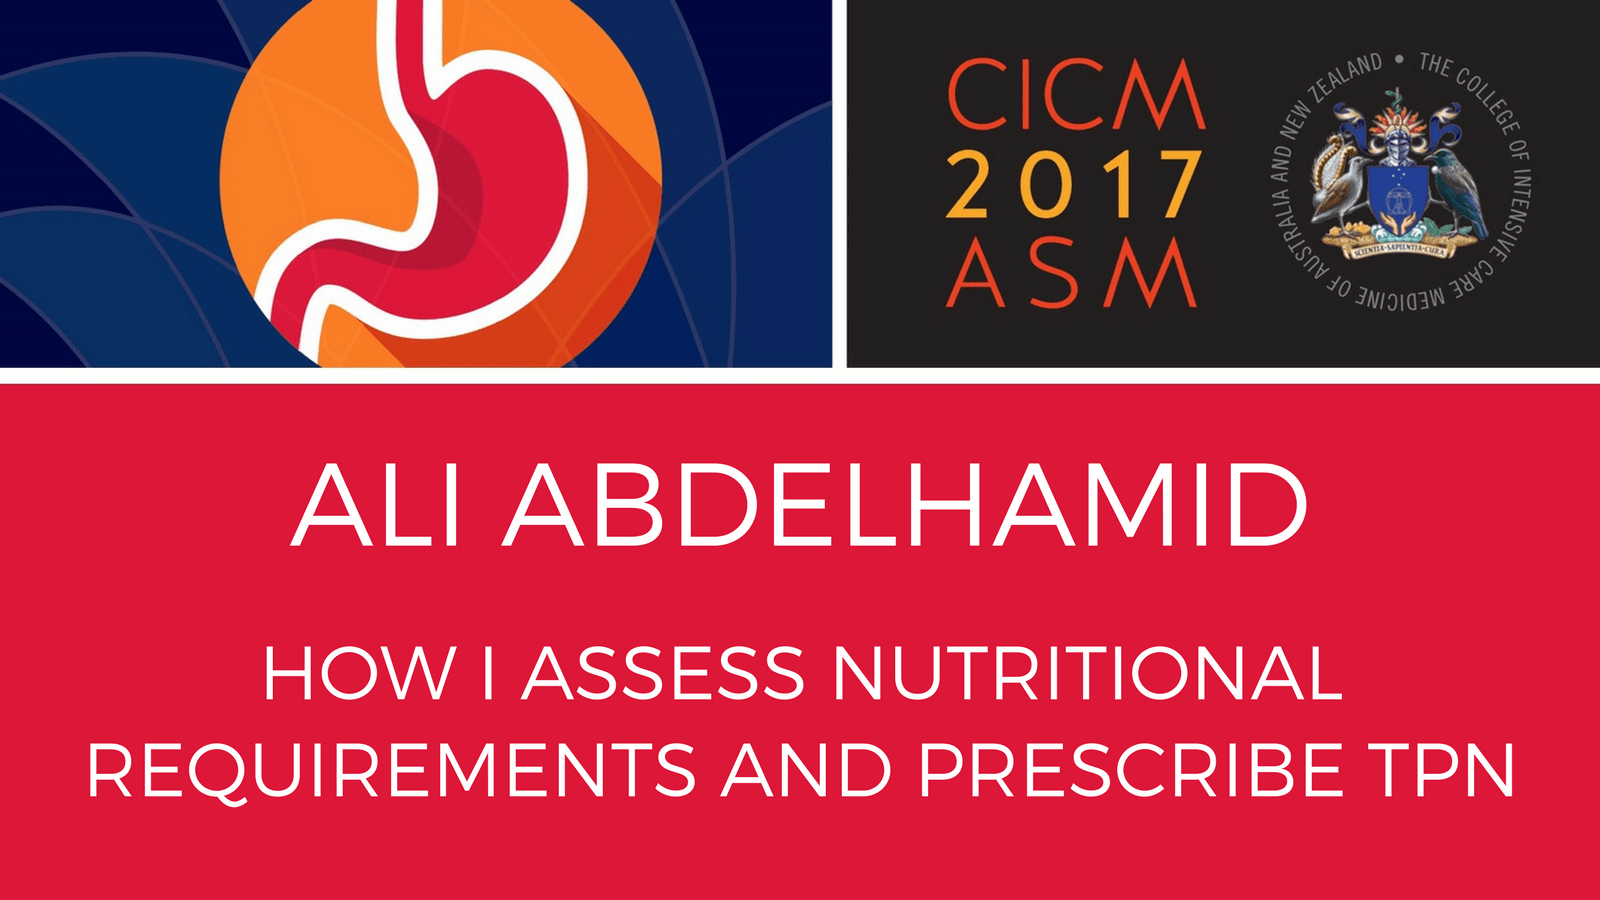 Ali Abdelhamid - How I assess nutritional requirements and prescribe TPN